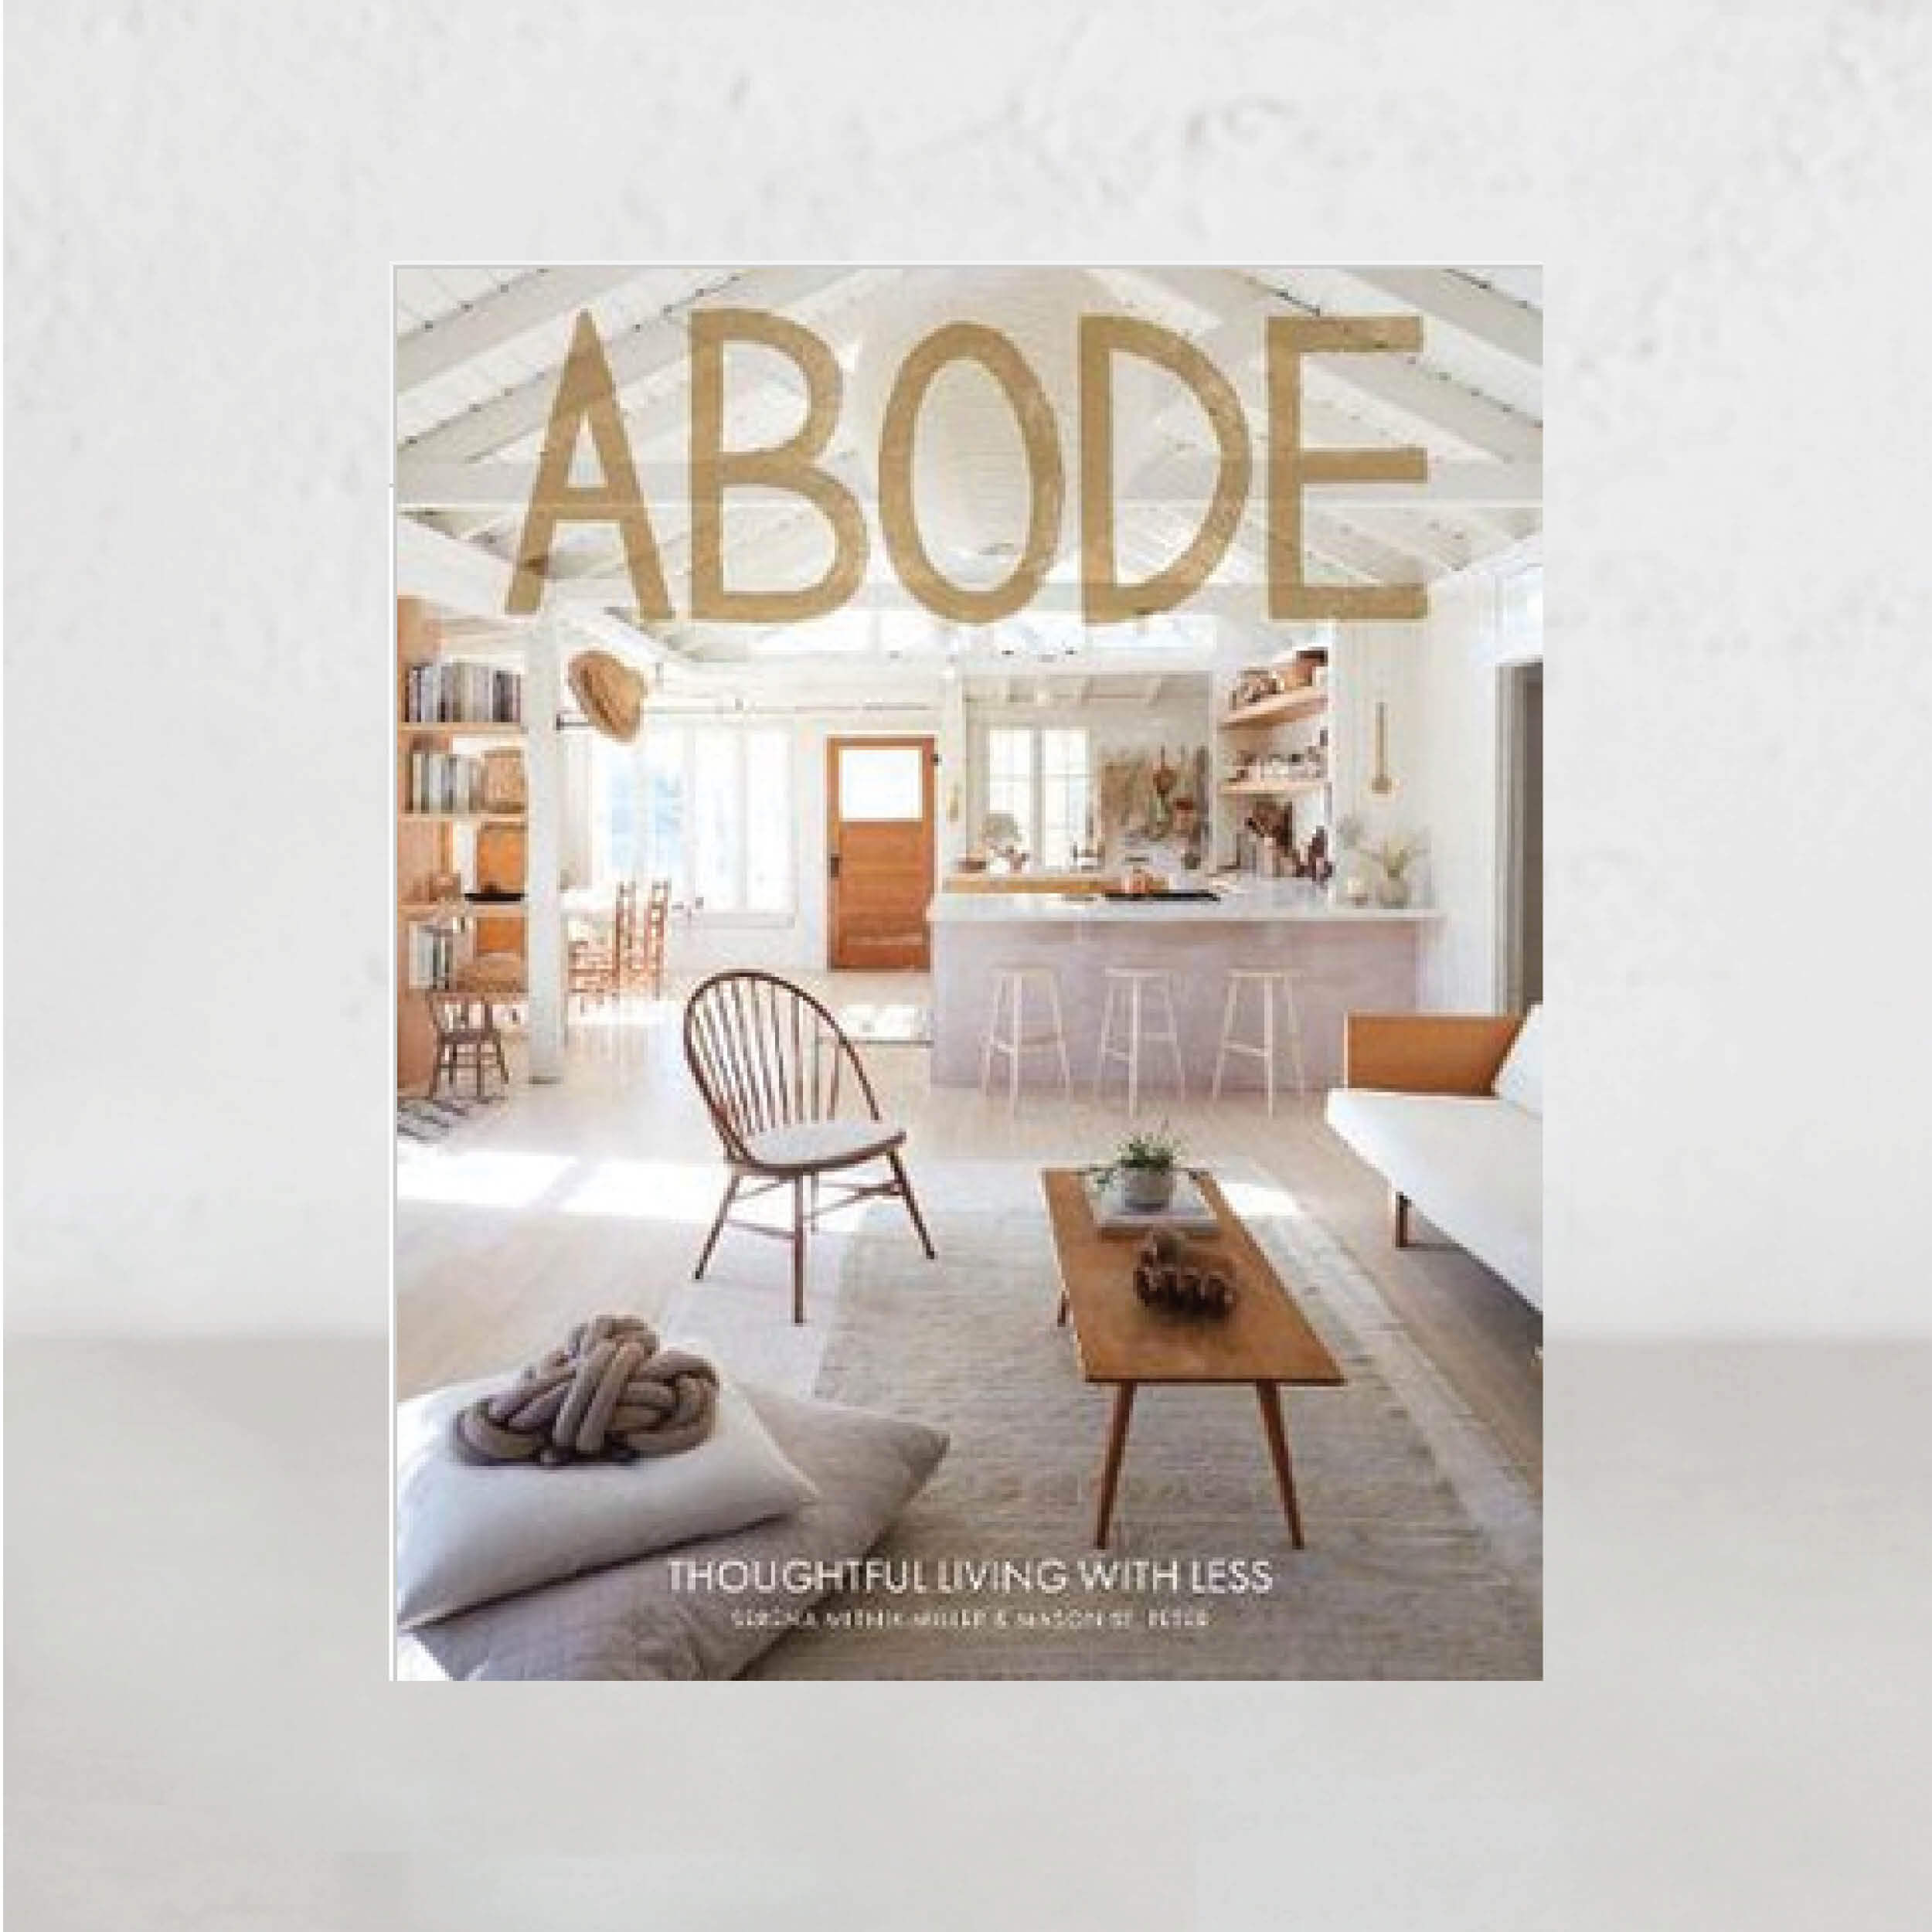 ABODE - THOUGHTFUL LIVING WITH LESS |  SERENA MITNIK-MILLER